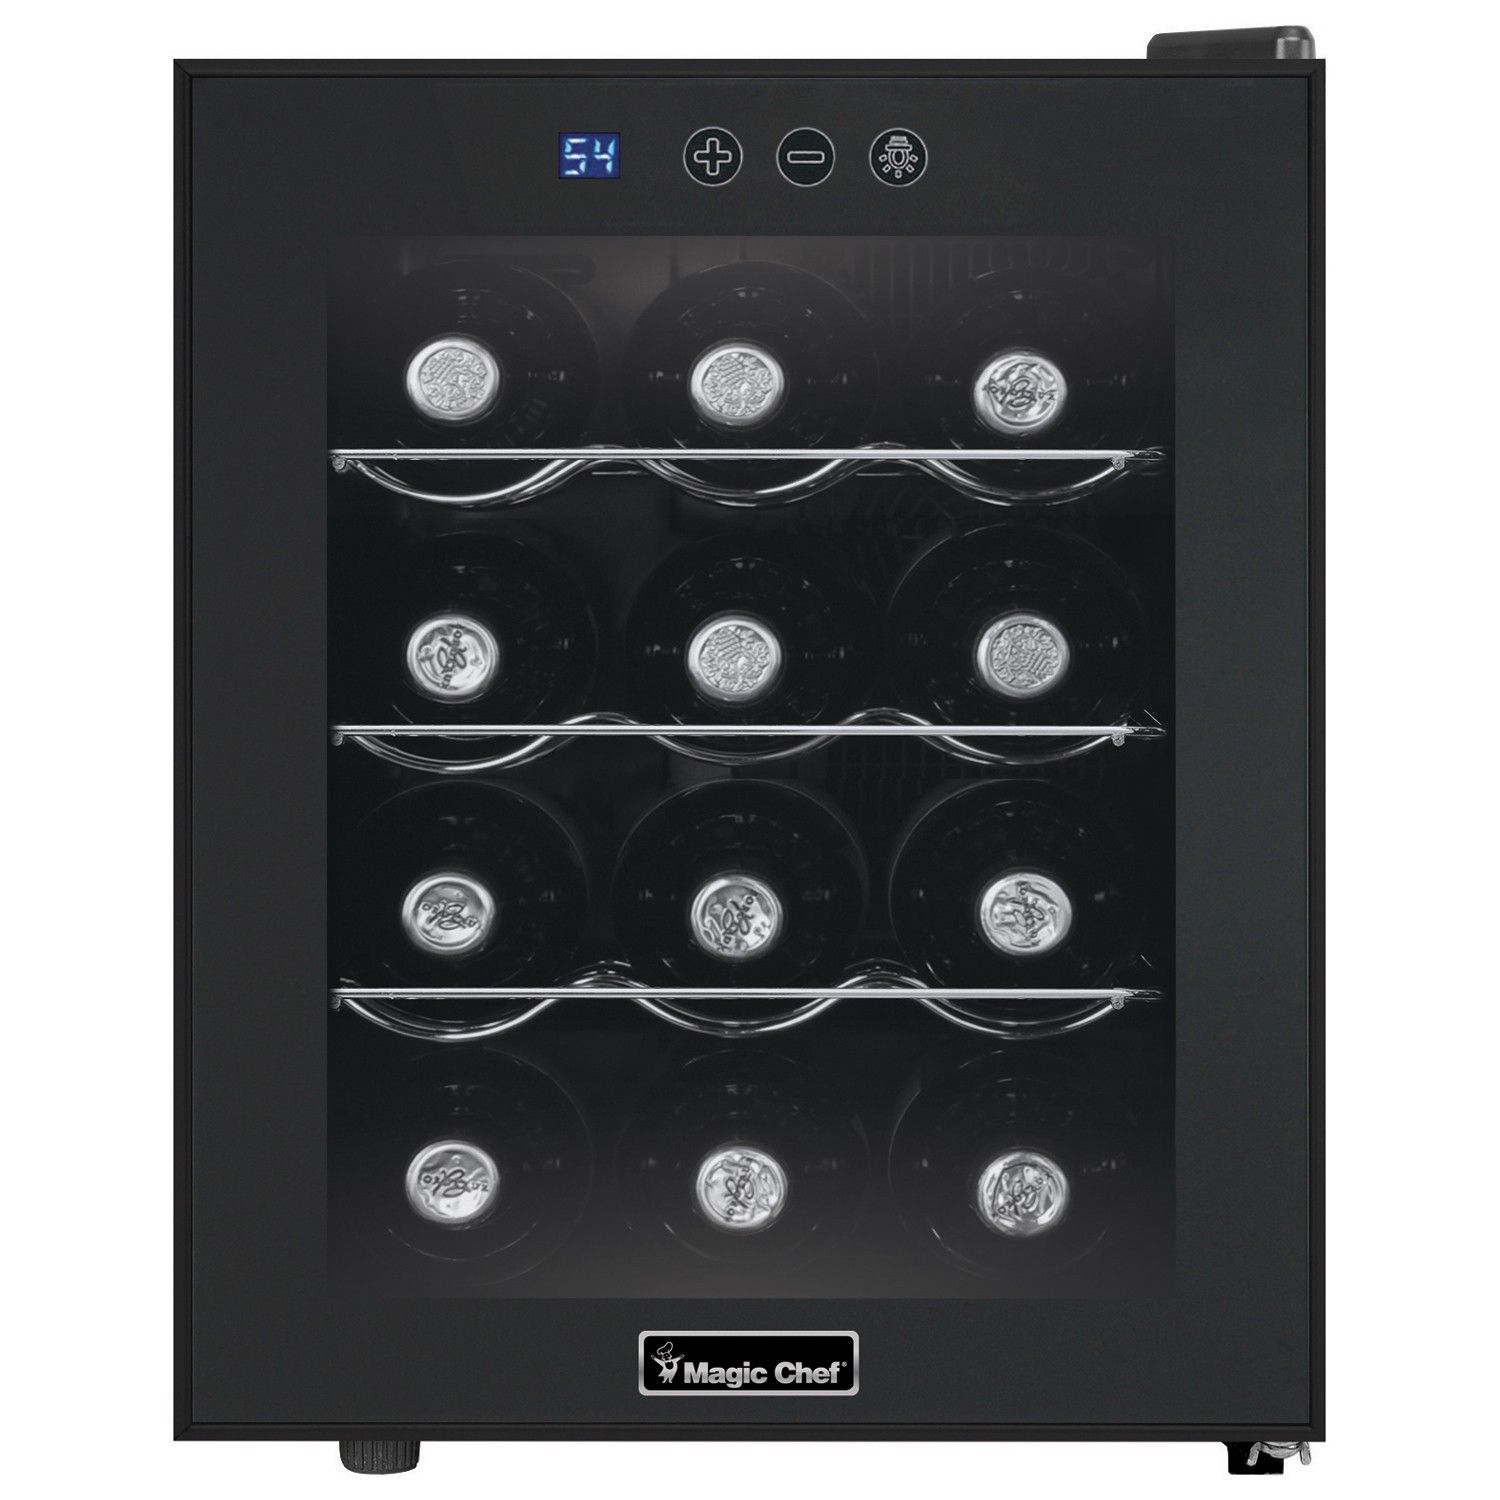 Magic Chef 12 Bottle Countertop Wine Cooler Black Products Wine Fridge Wine Refrigerator Best Wine Coolers